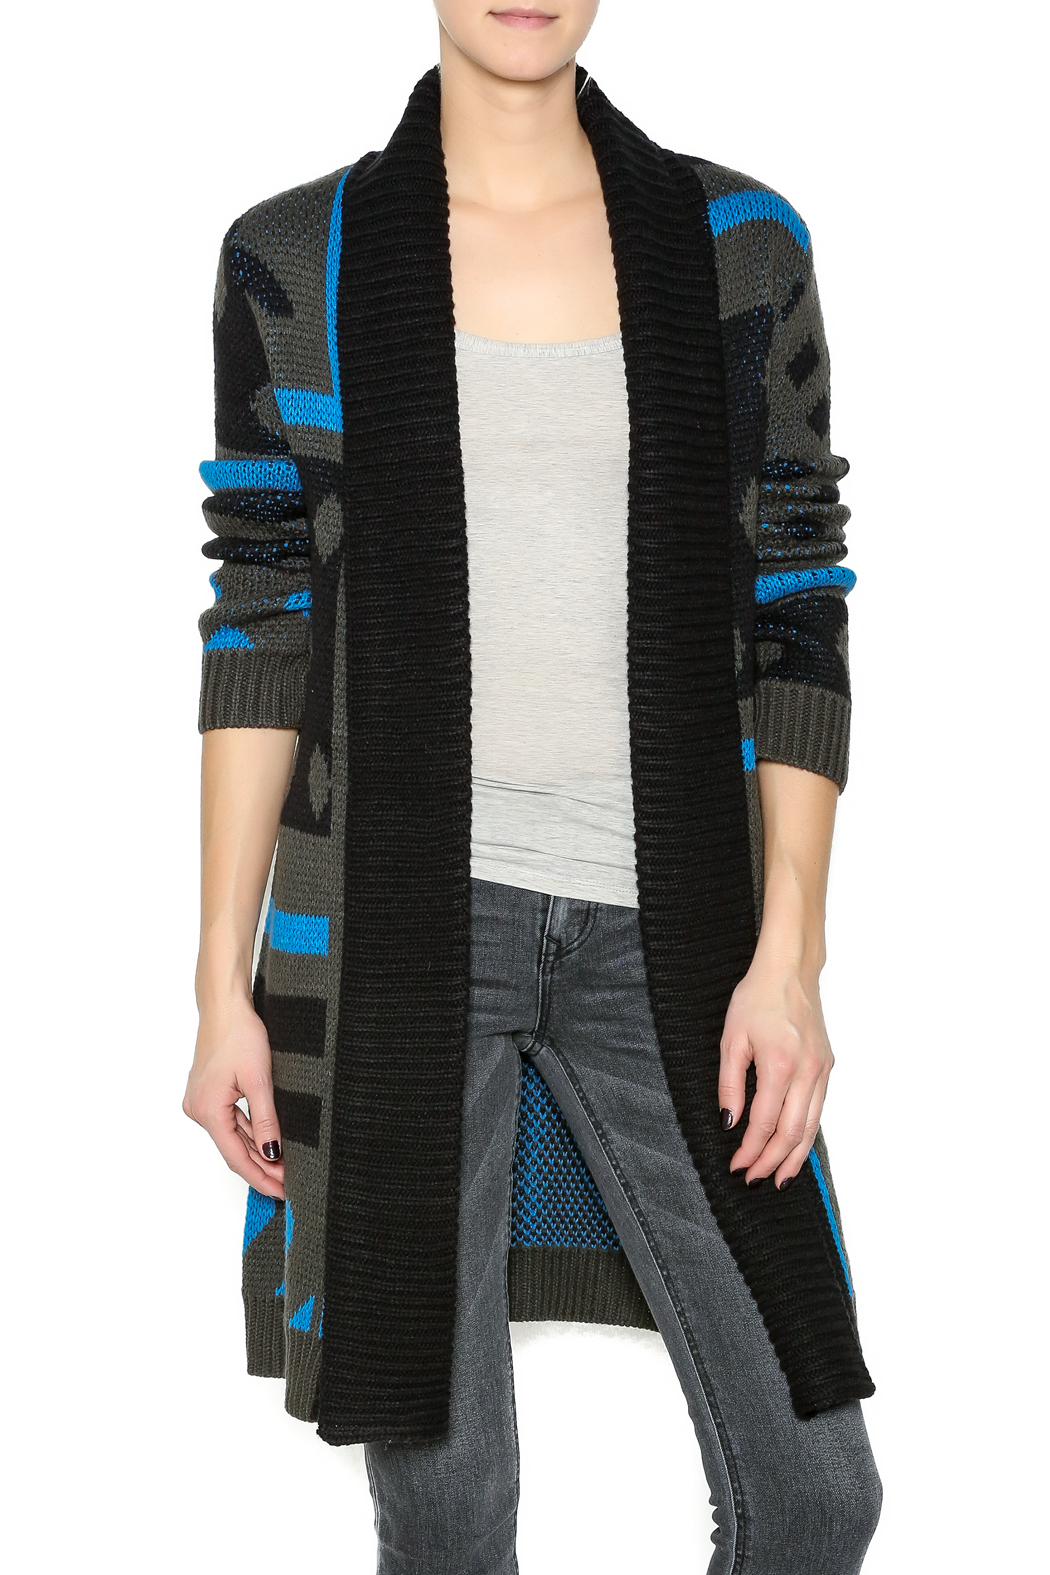 Focus 2000 Long Cardigan Sweater - Front Cropped Image